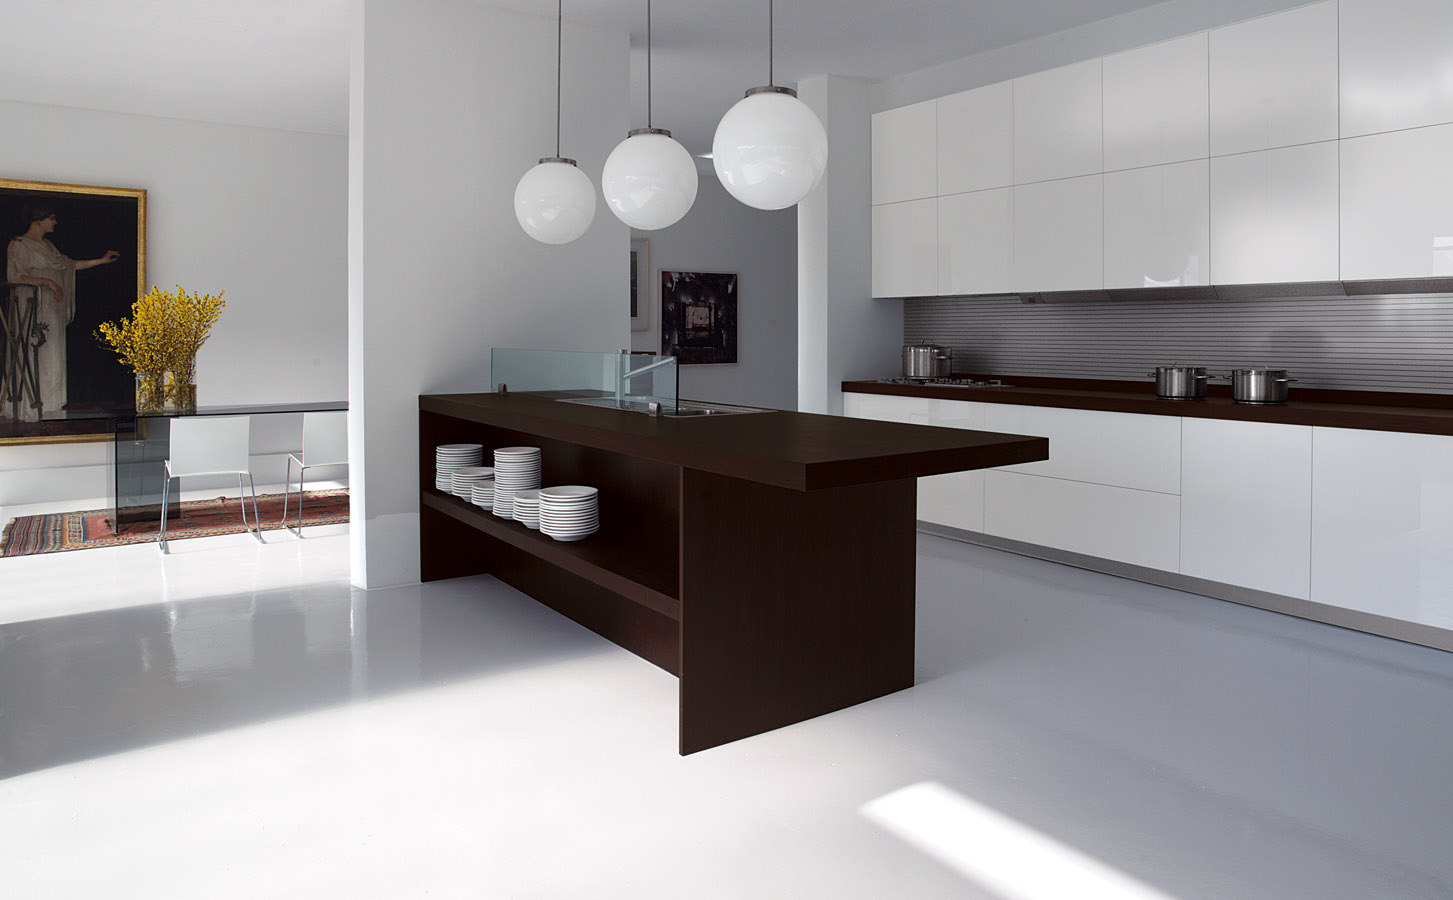 Simple contemporary kitchen interior design one - Kitchen interior desing ...